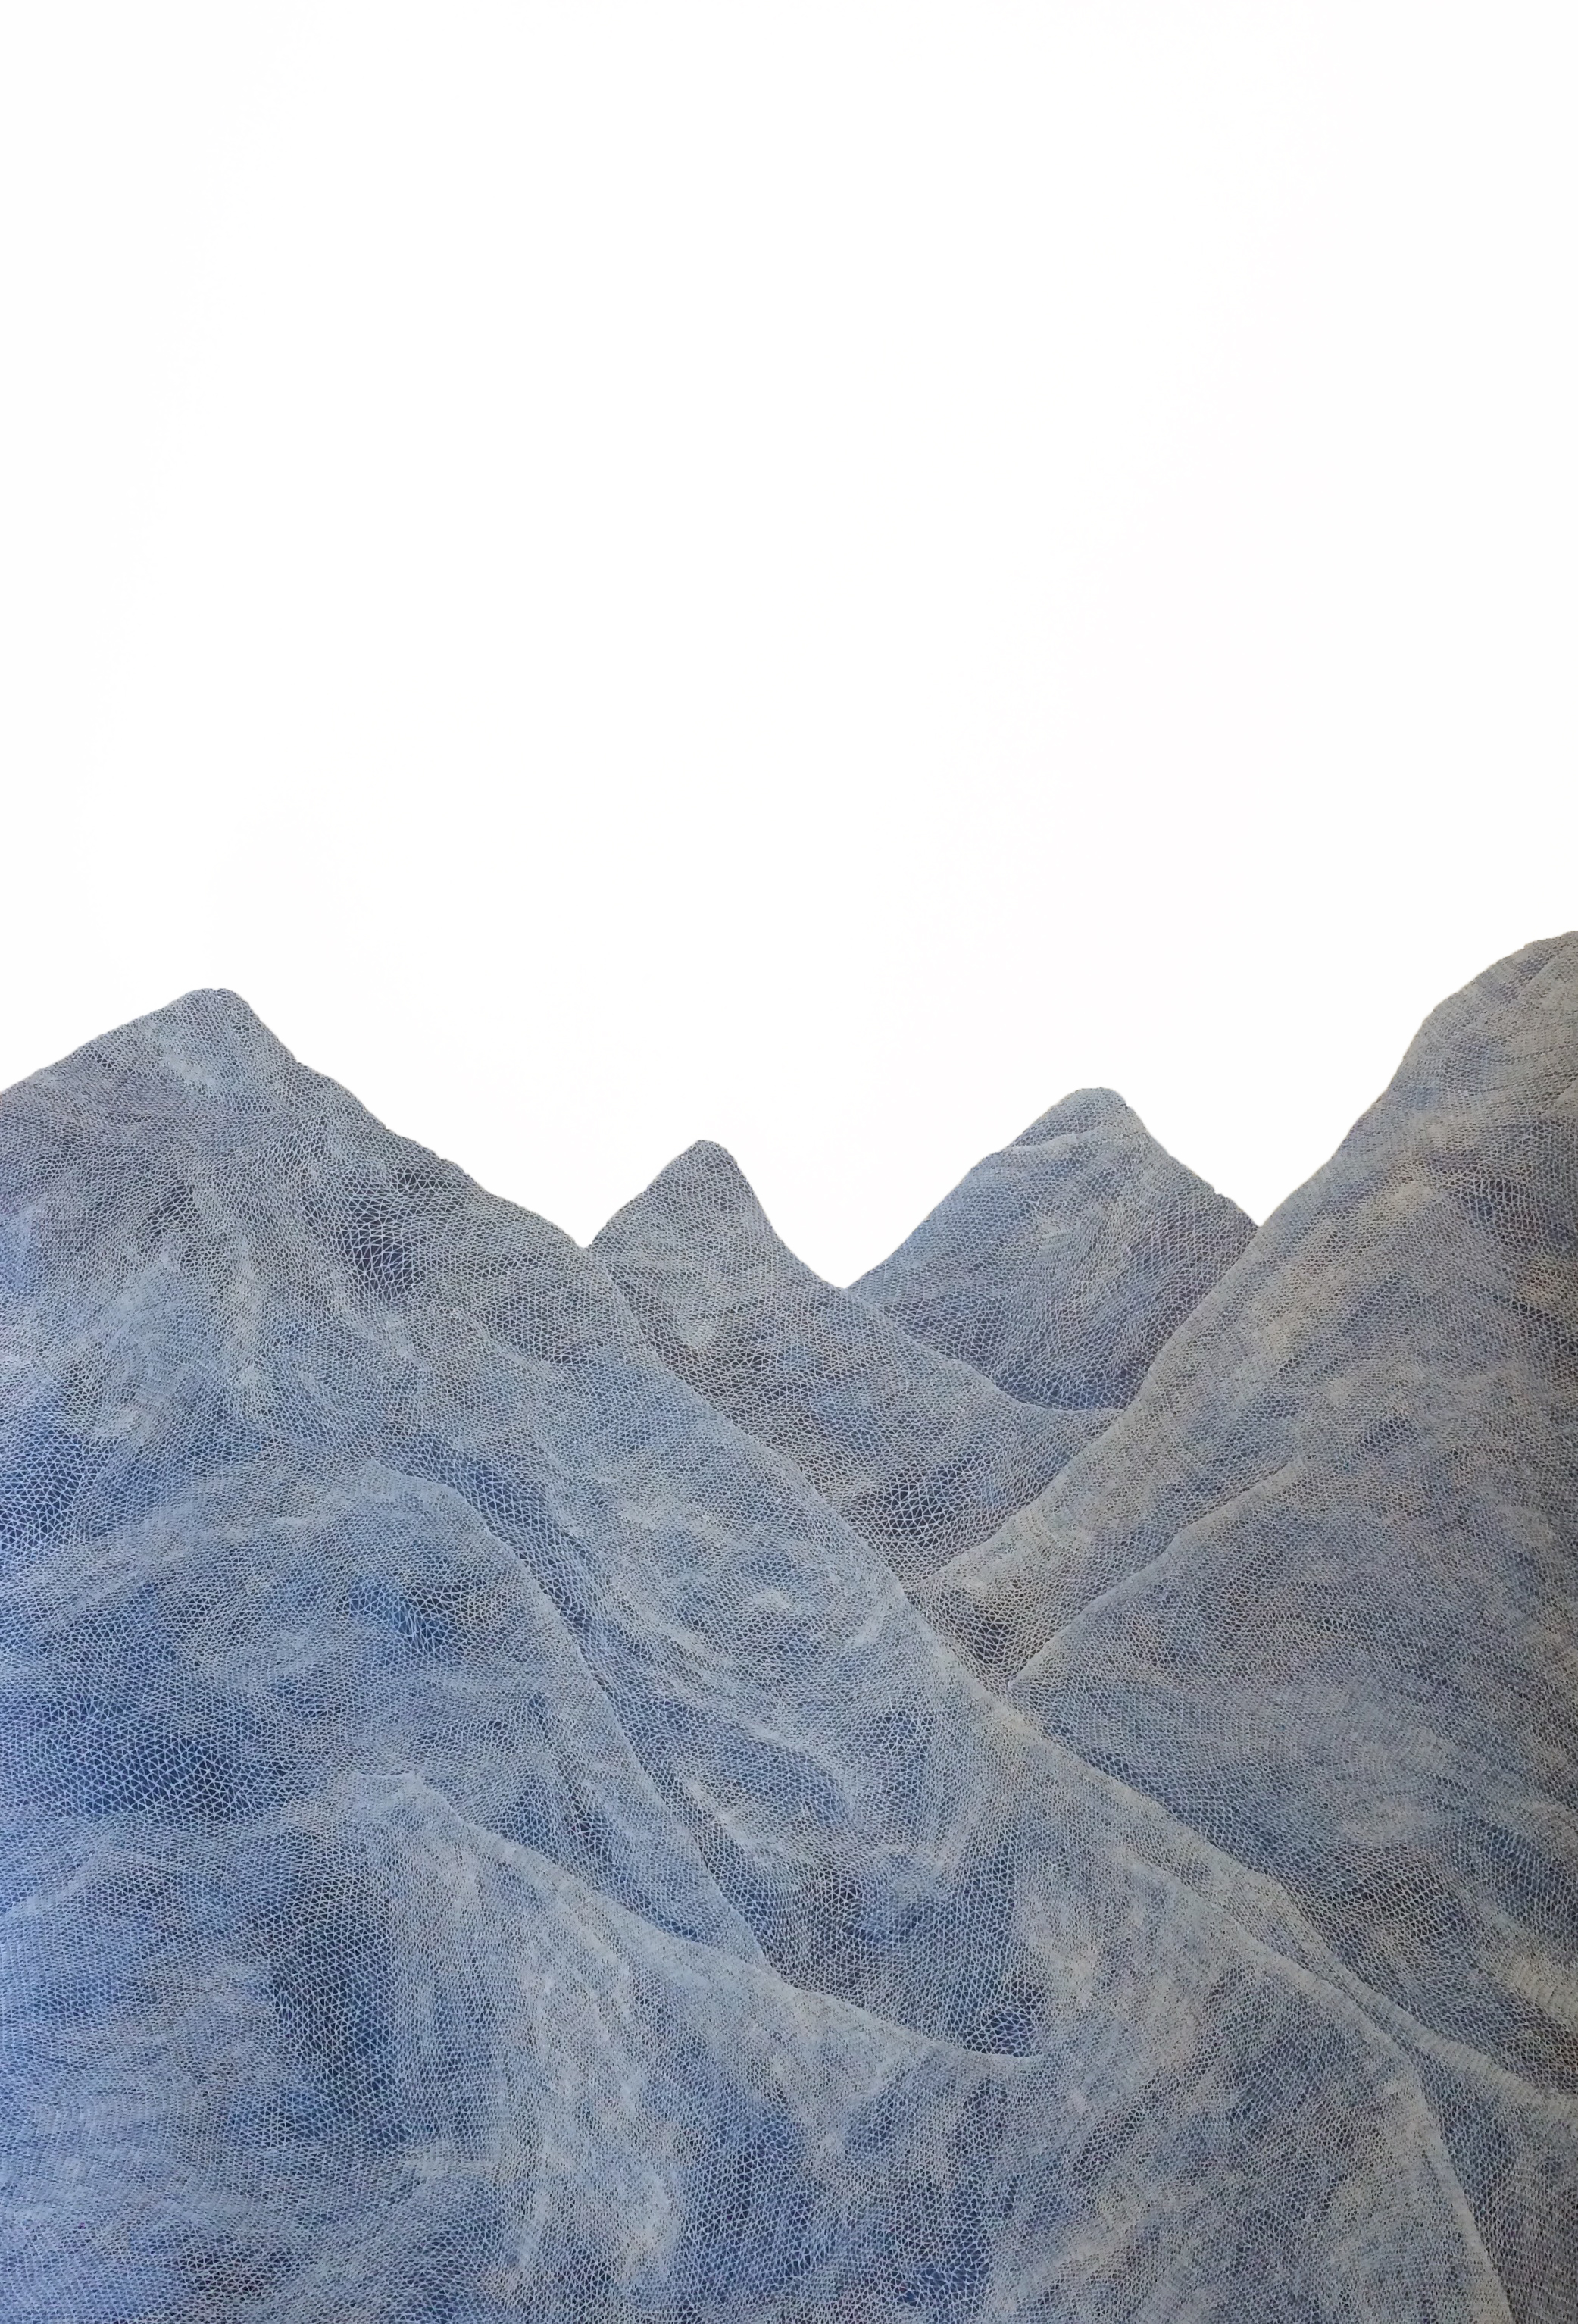 Topographical Expanse